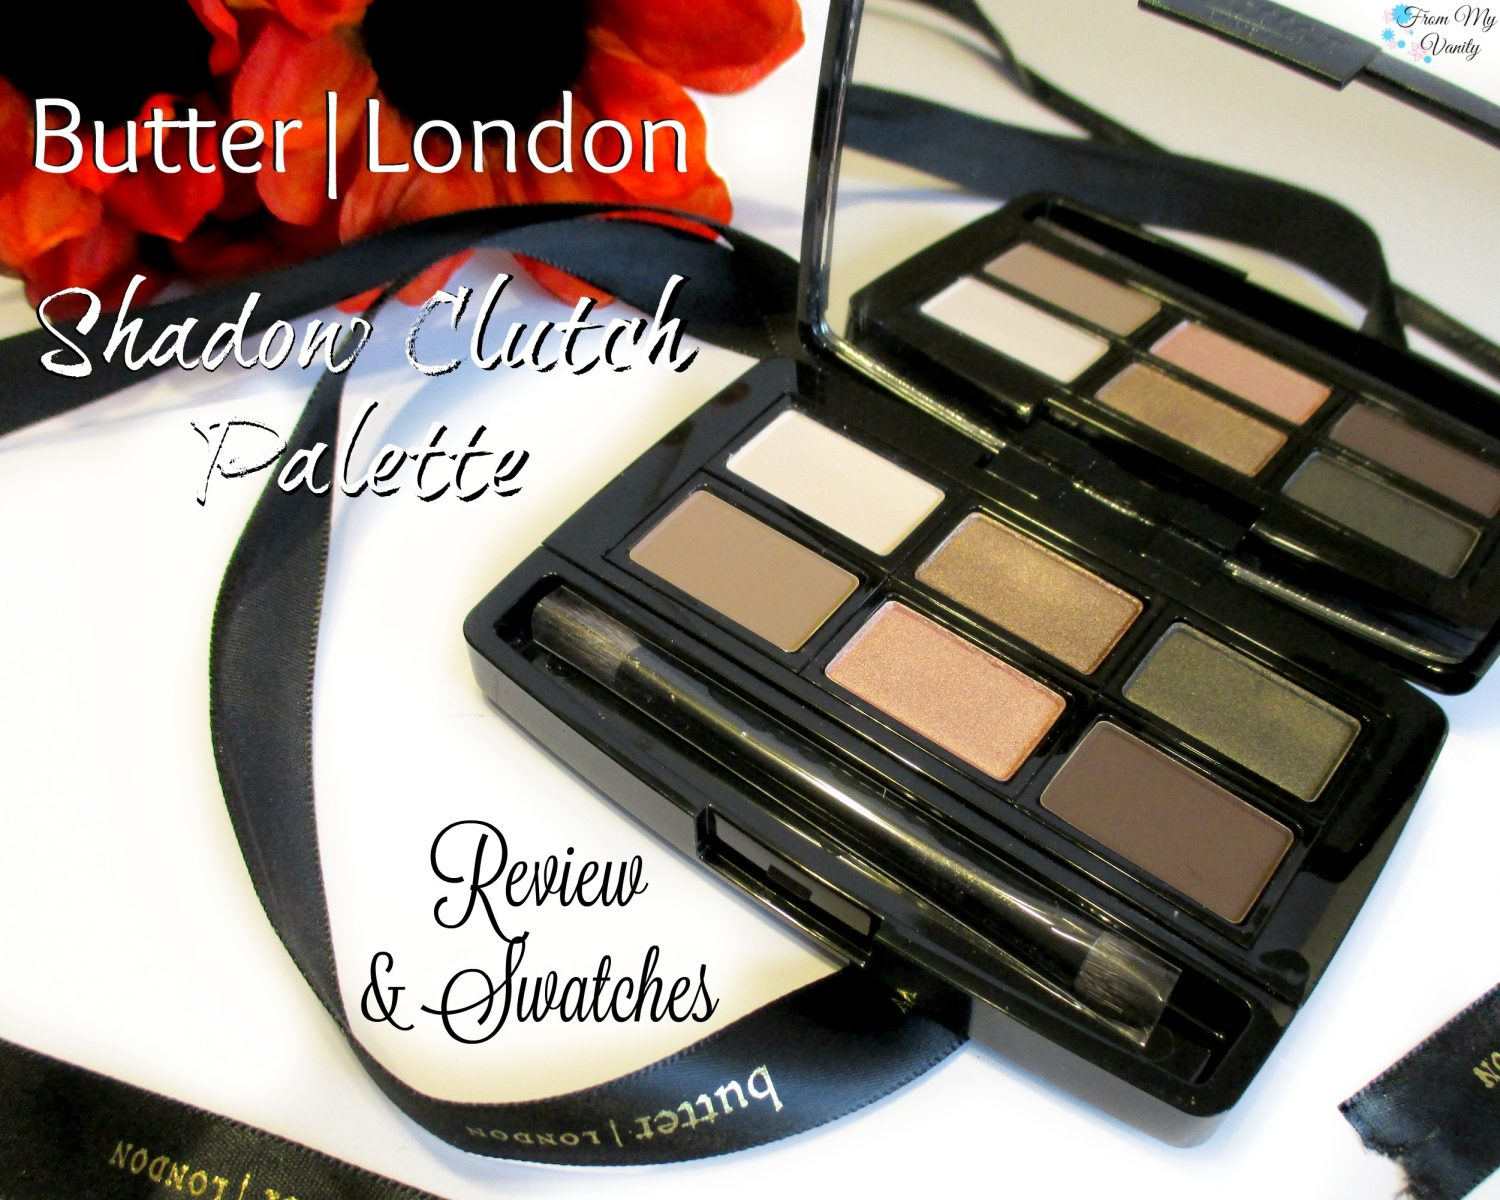 Butter London NEW Shadow Clutch Palette // Review & Swatches // FromMyVanity.com